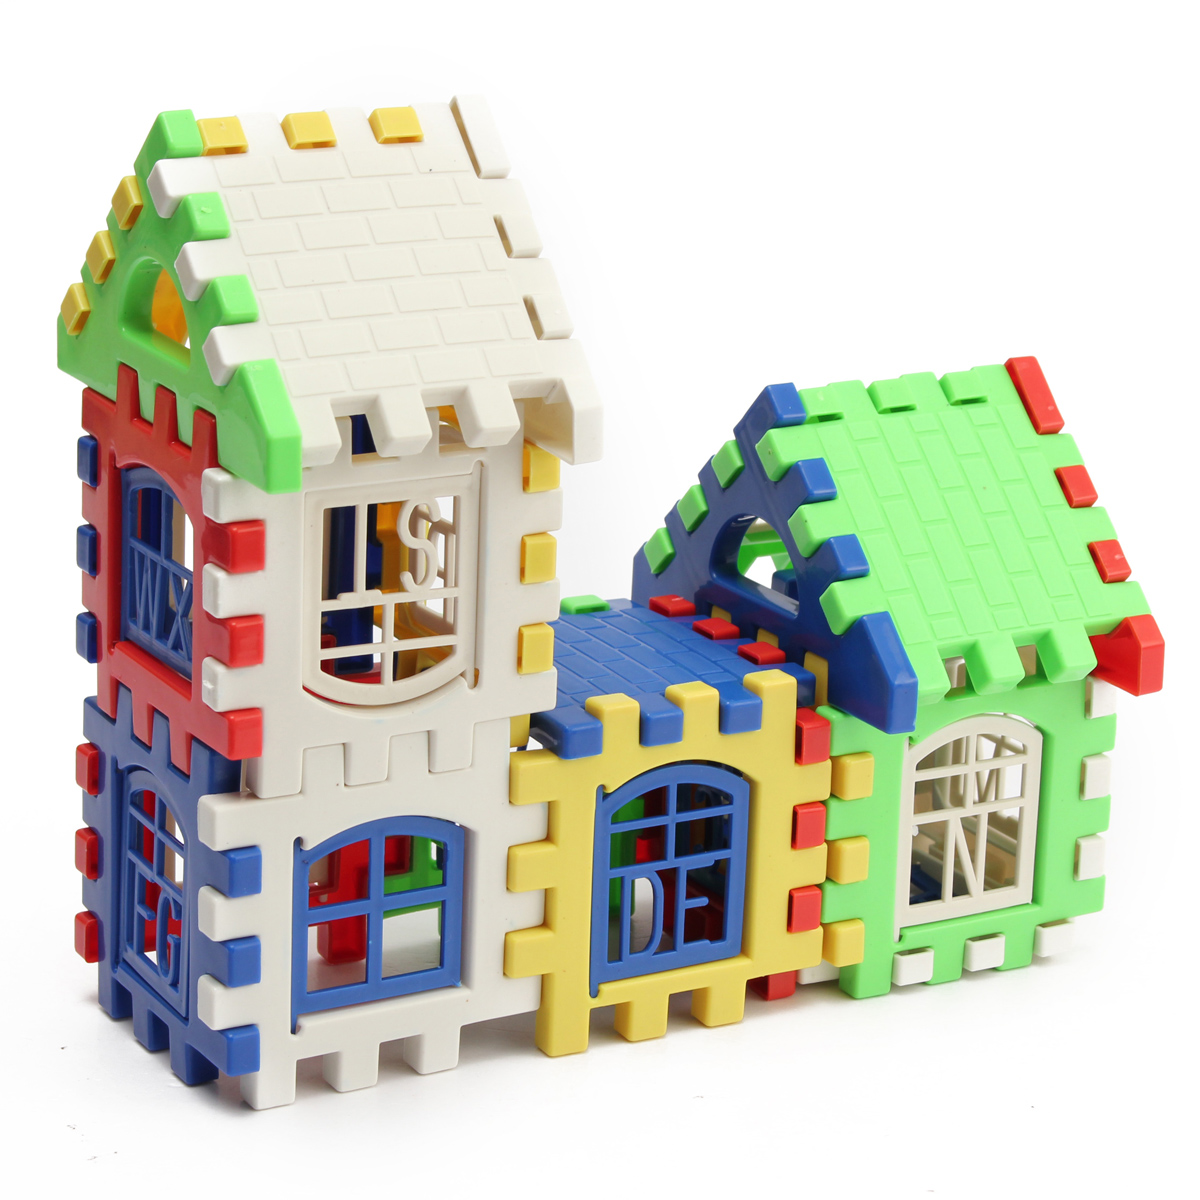 24Pcs Baby Kid Children House Building Blocks Enlighten Construction Developmental Toy Baby Block Set